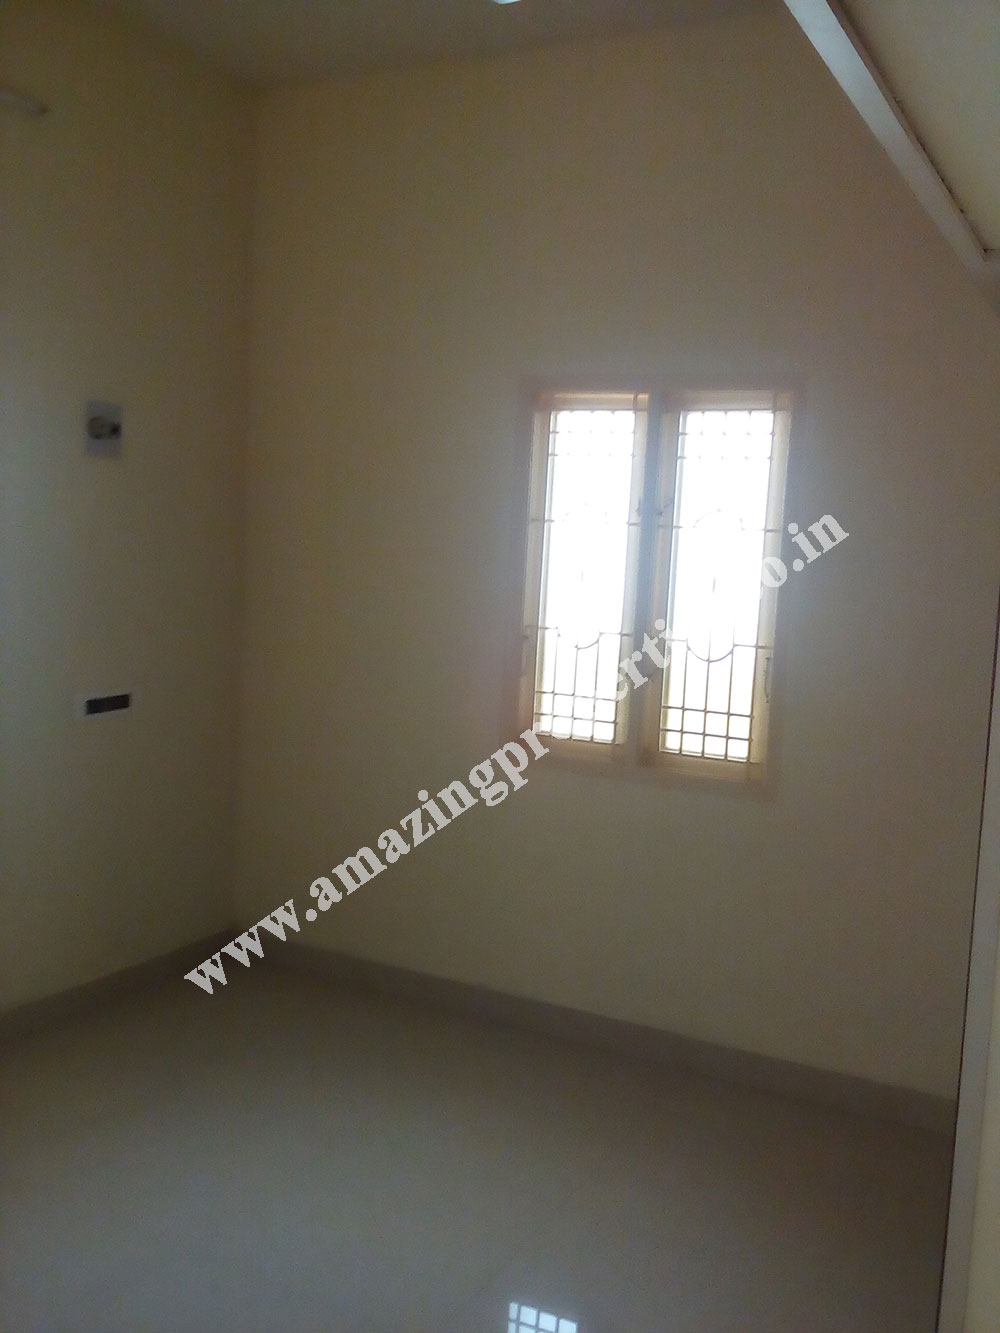 House for sale in NGO A Colony Tirunelveli